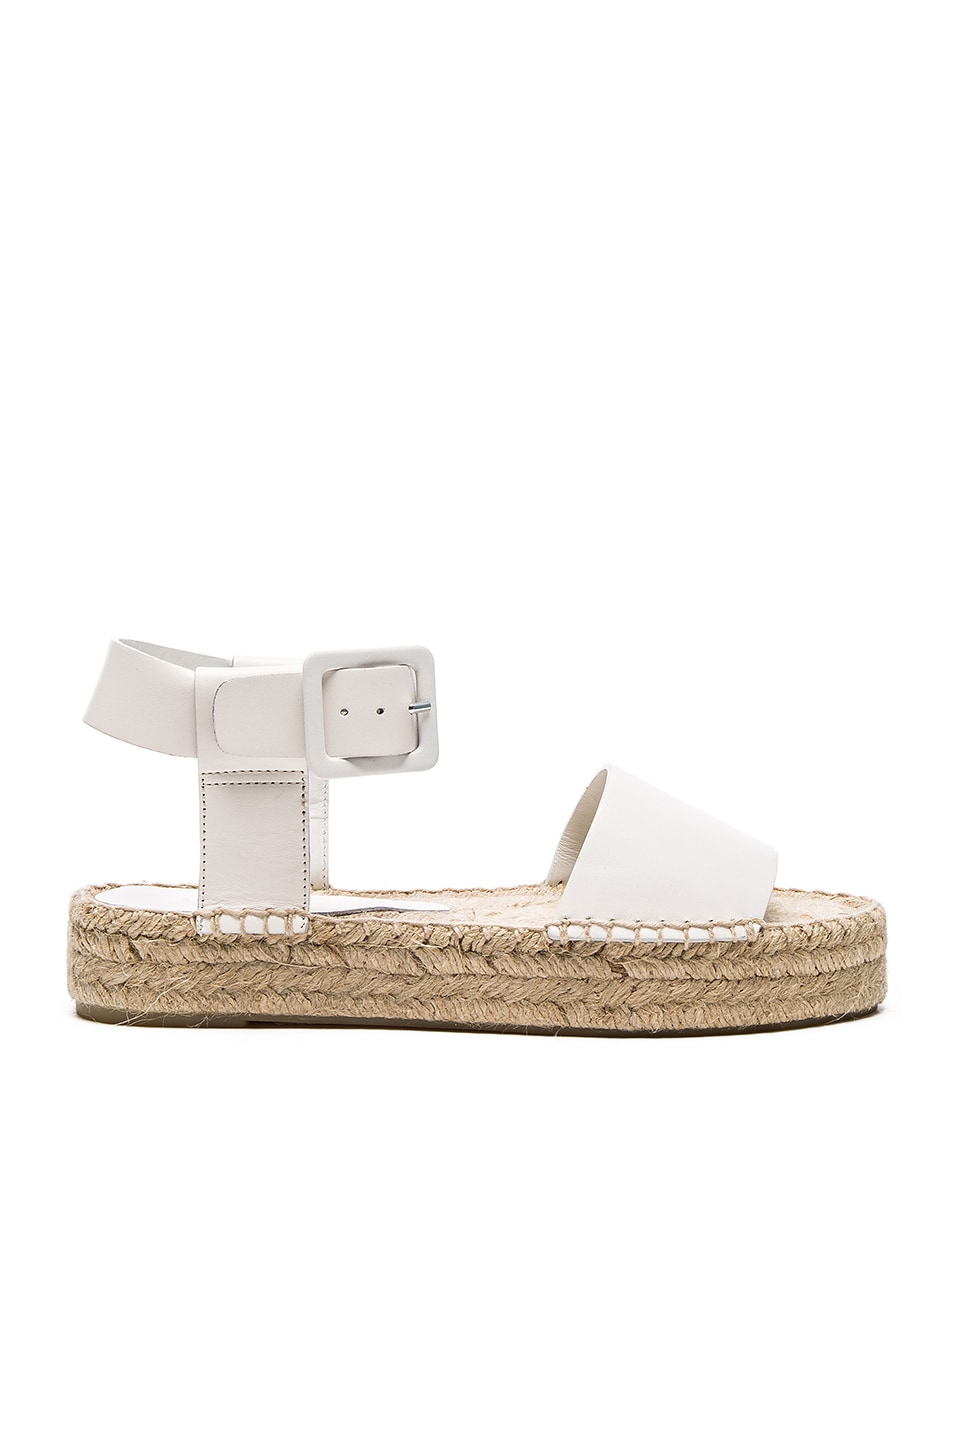 Vince Edina Sandal in Alabaster